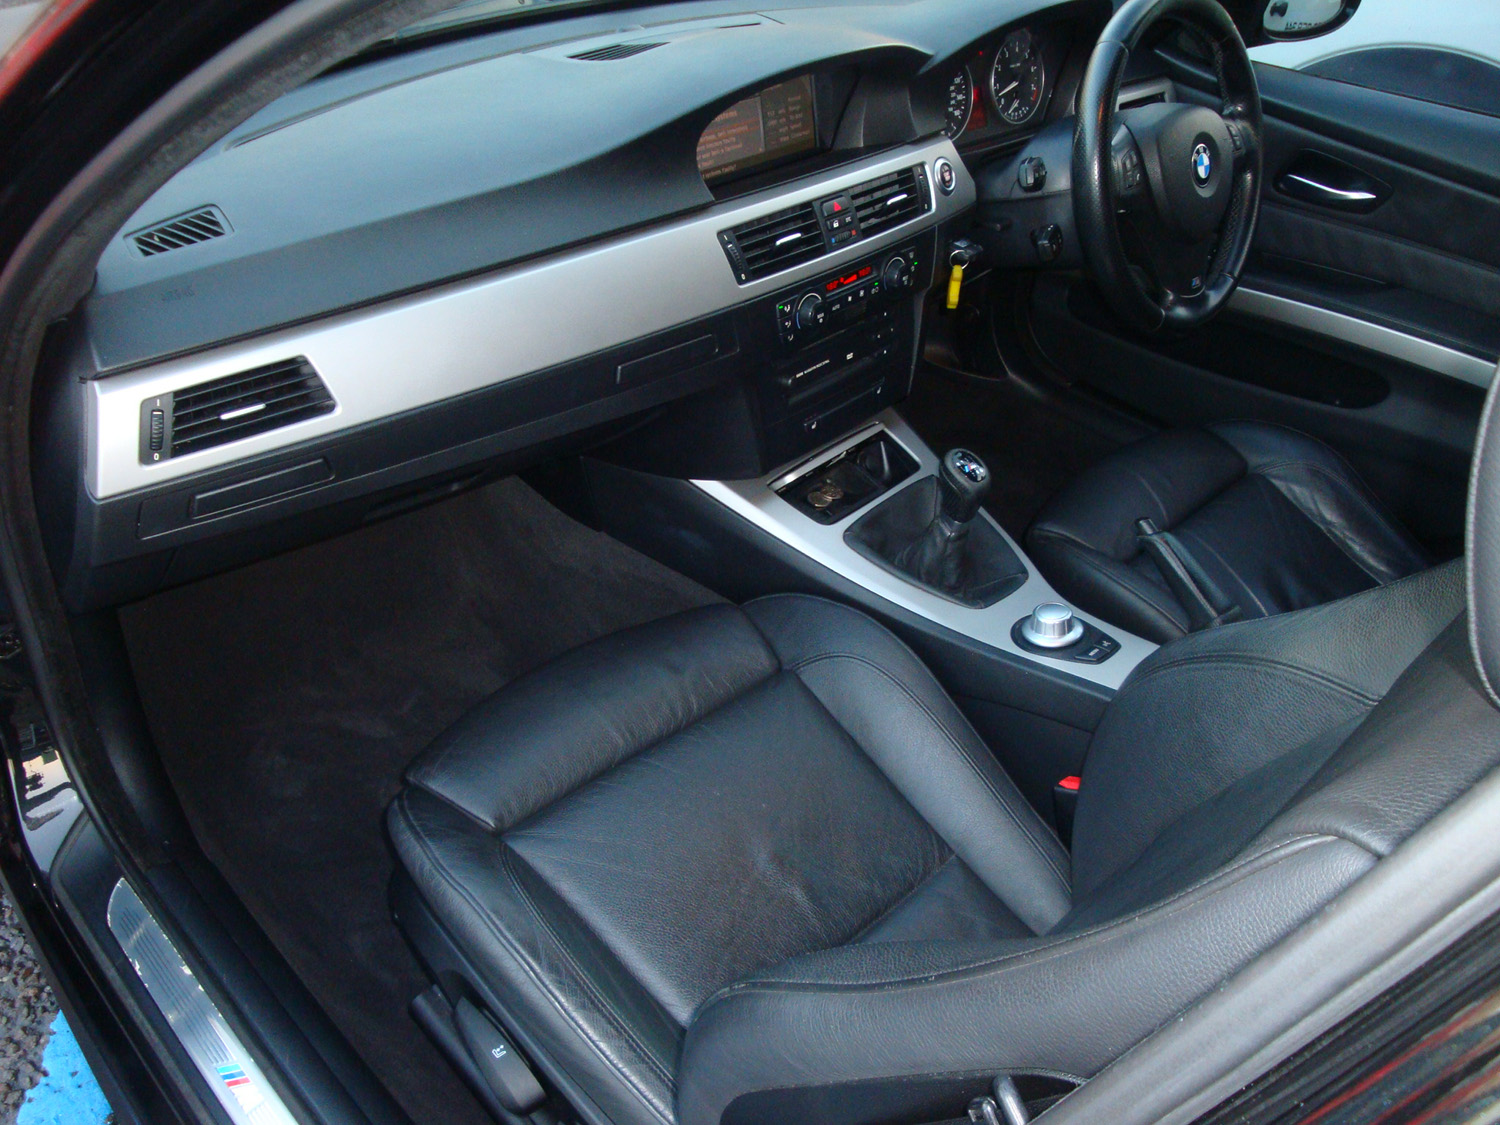 Bmw 330i Interior After Surrey Shine Car Valet